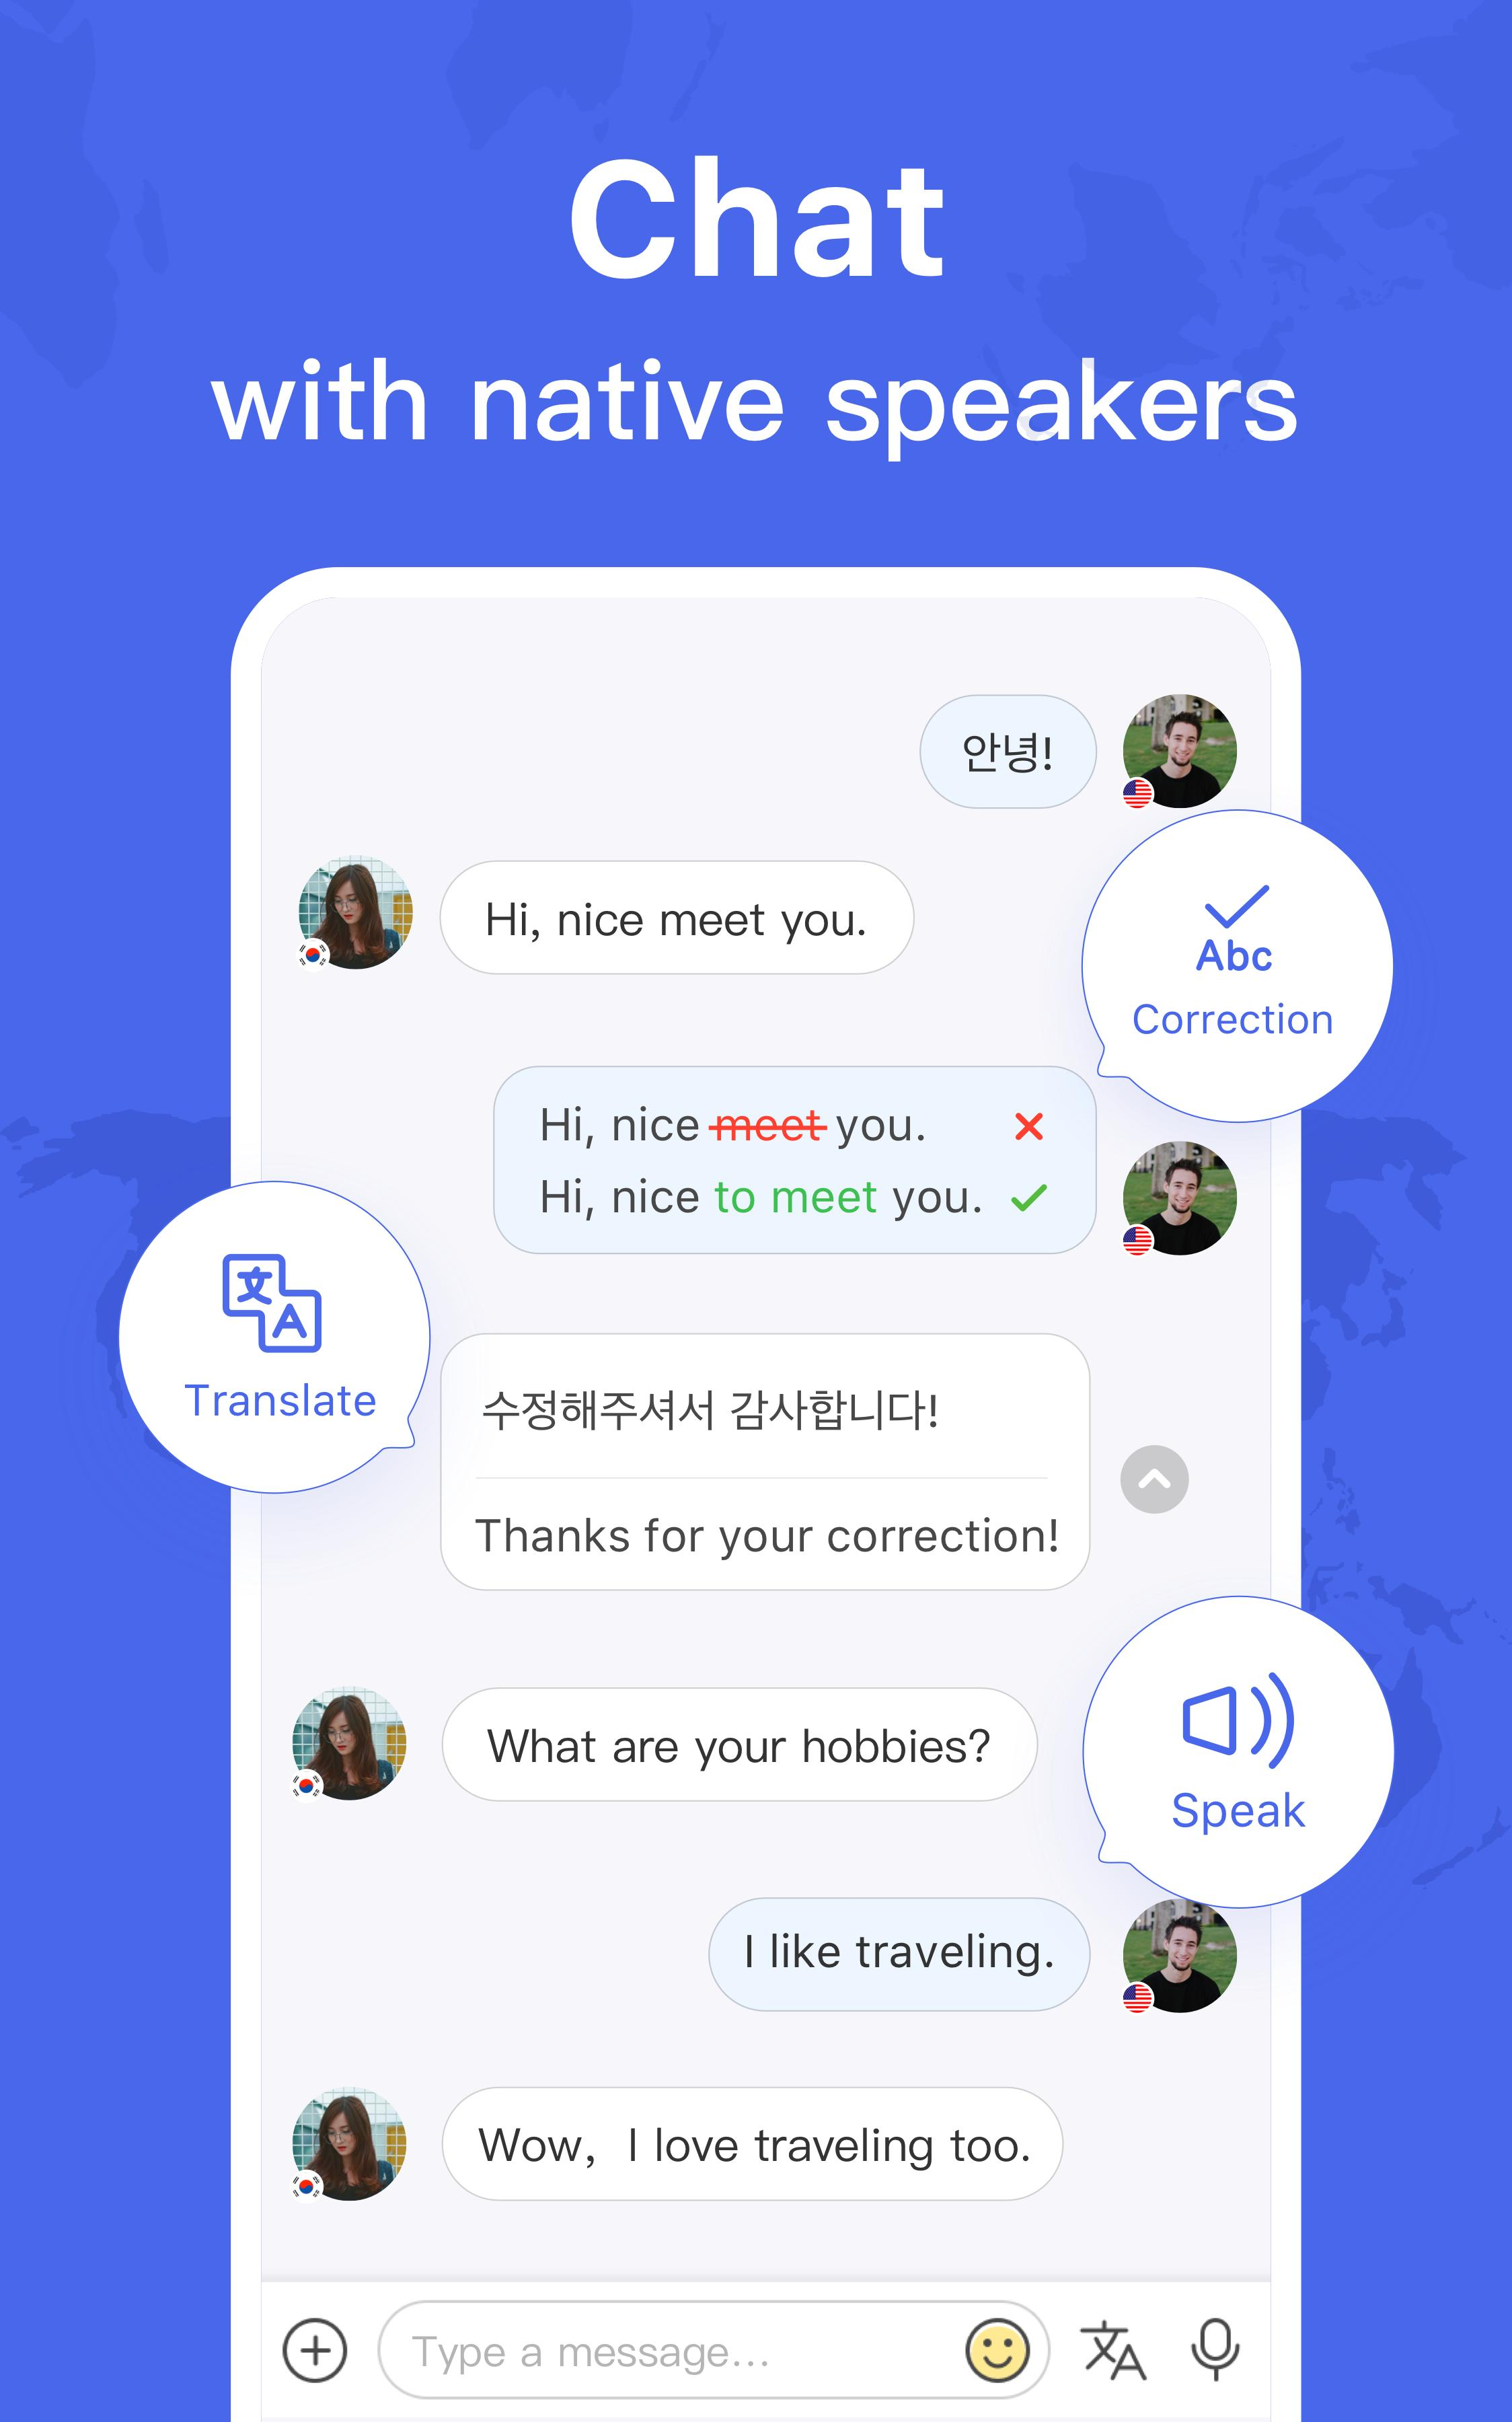 HelloTalk — Chat, Speak & Learn Foreign Languages 4.1.7 Screenshot 11